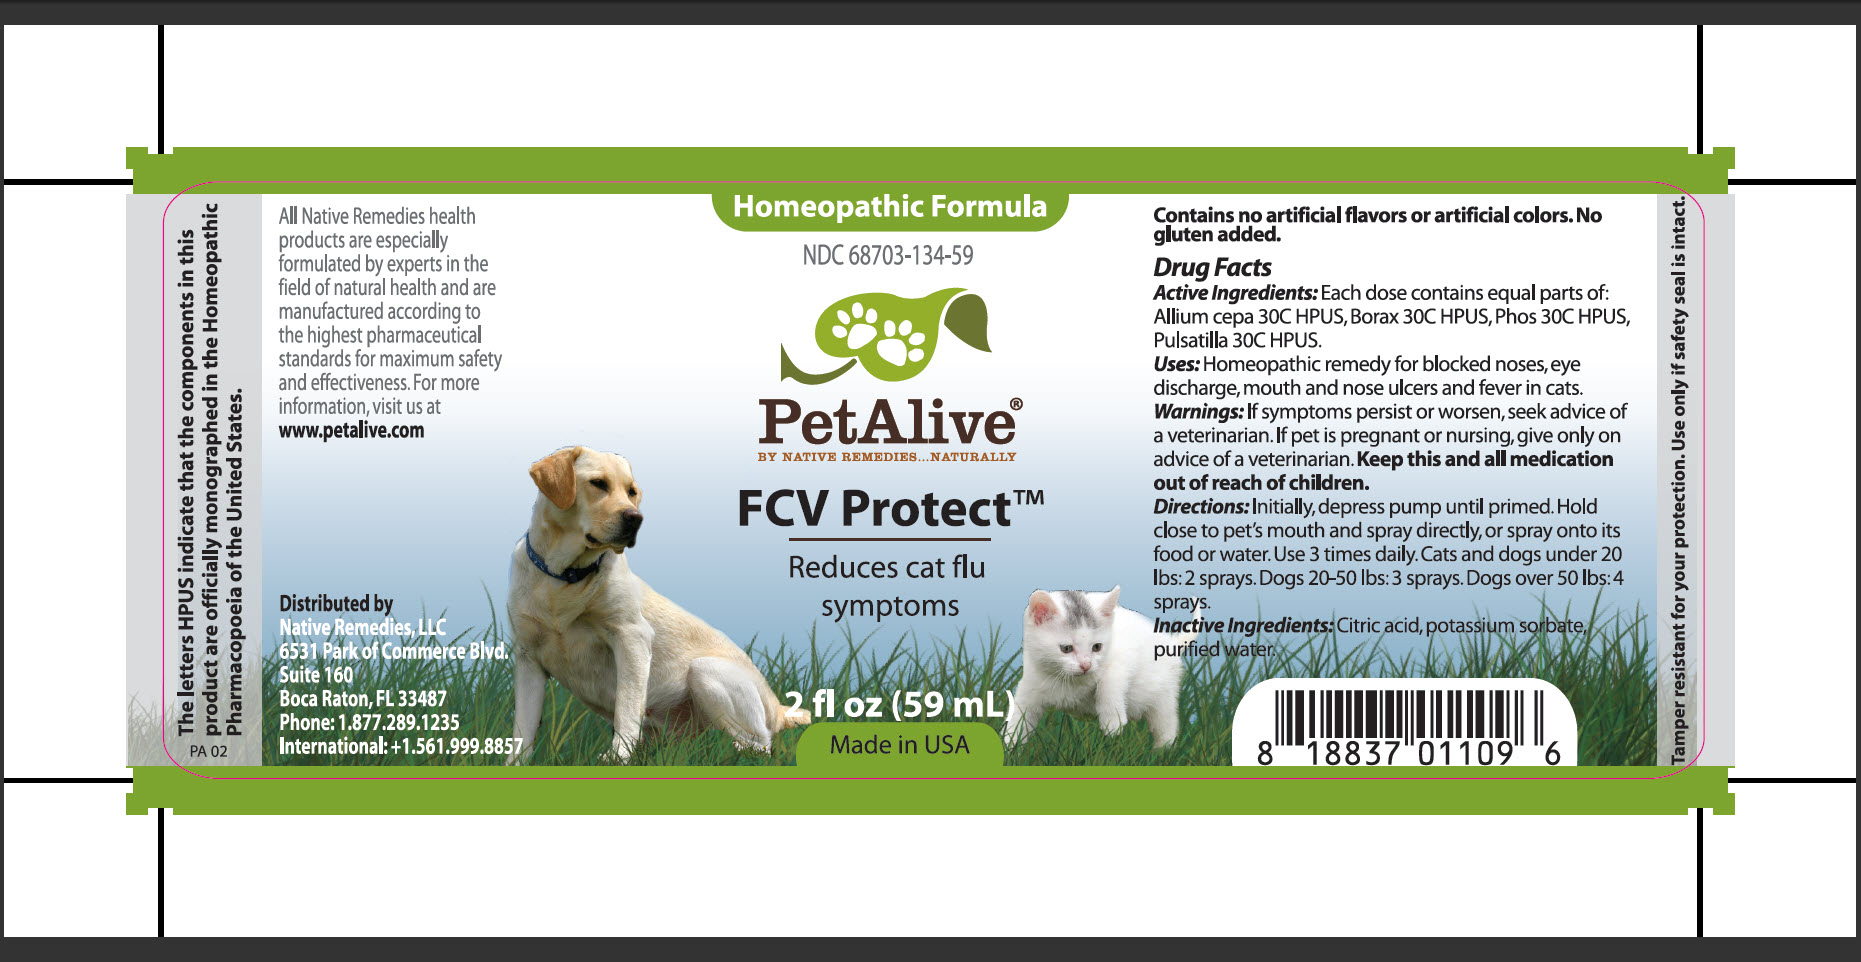 Fcv Protect (Allium Cepa, Borax, Phos, Pulsatilla) Spray [Native Remedies, Llc]